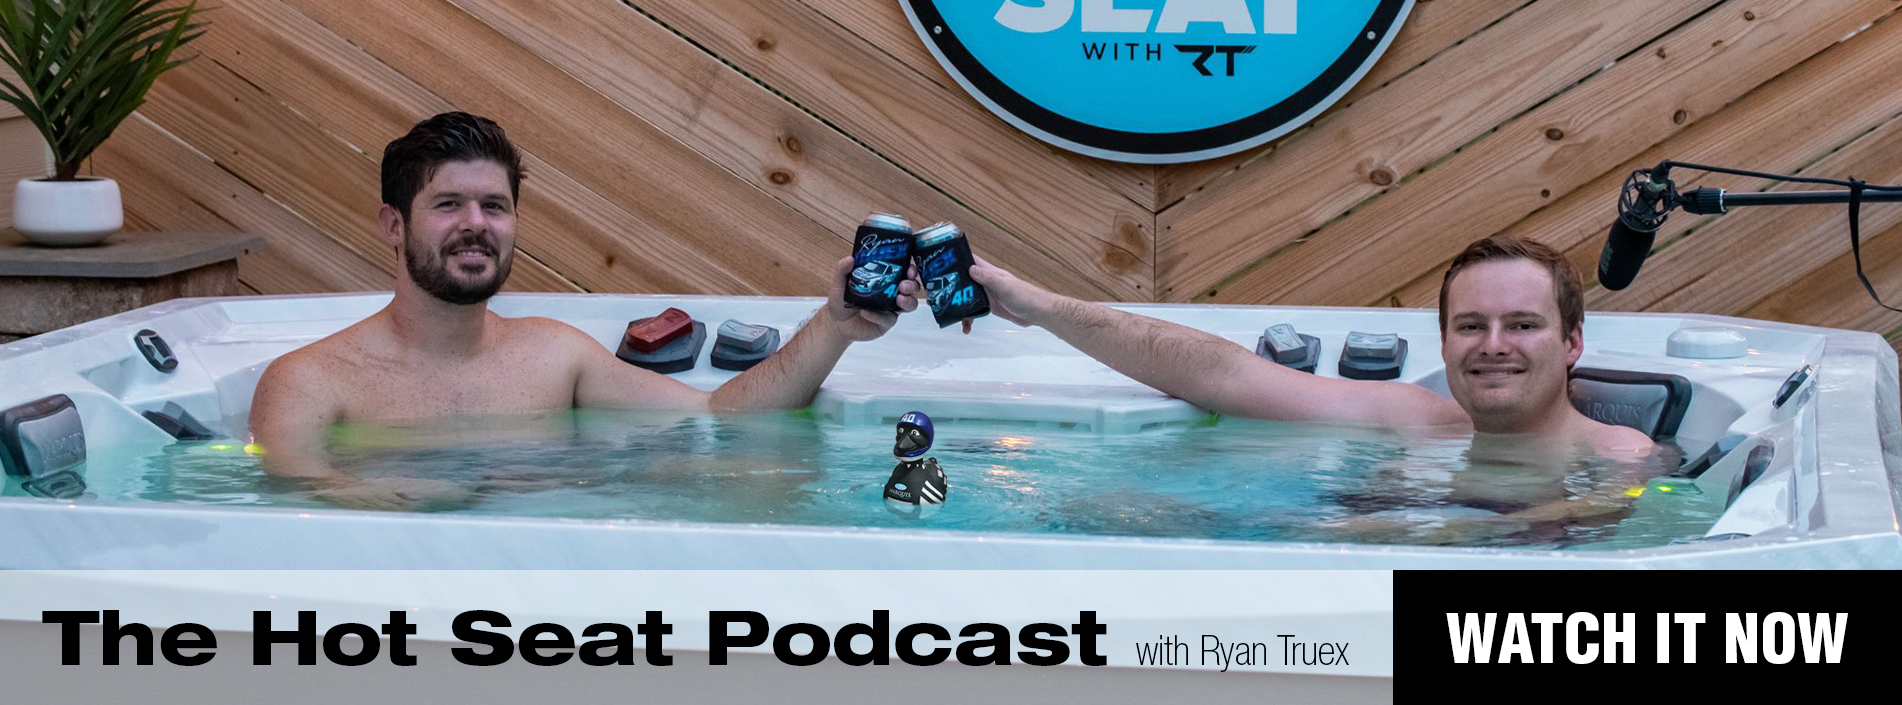 The Hot Seat Podcast with Ryan Truex